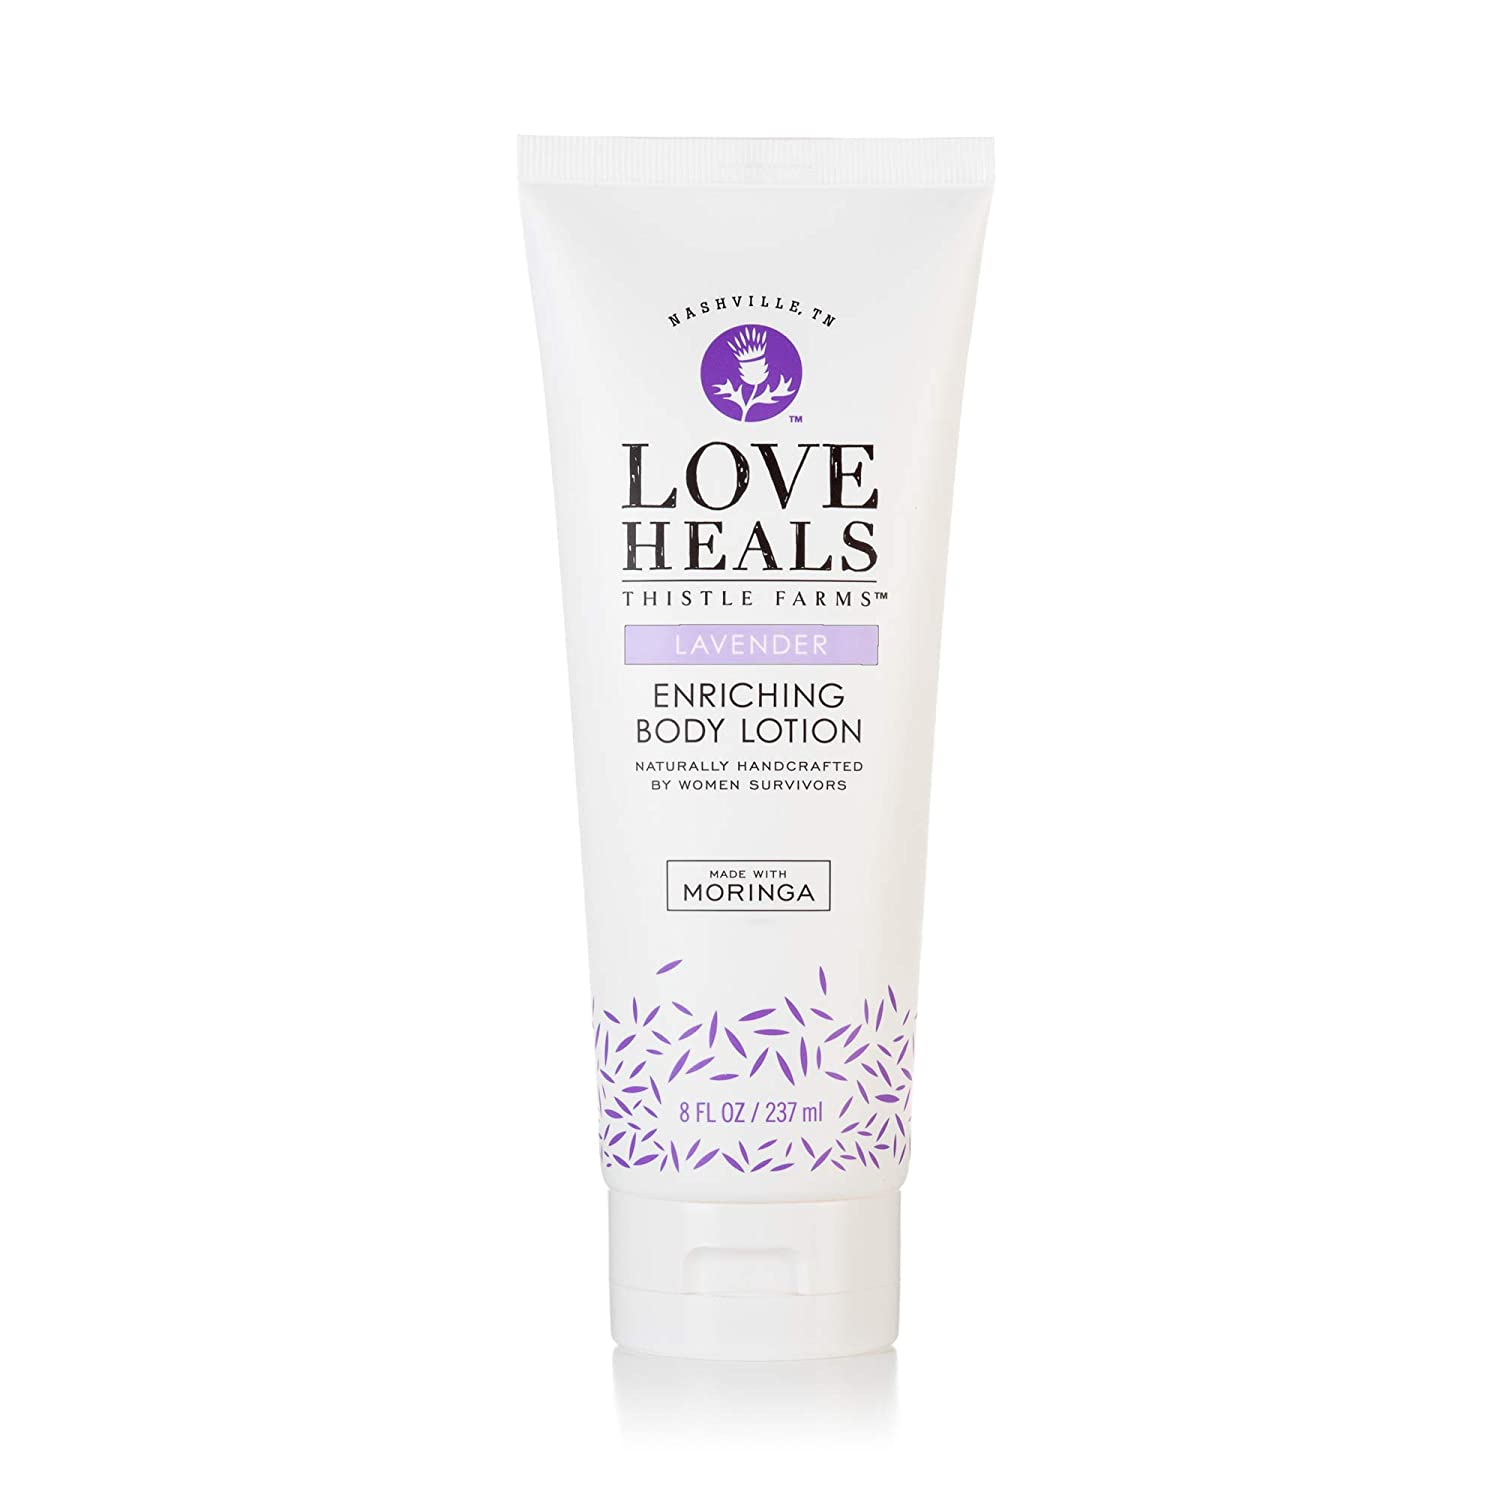 Thistle Farms | Love Heals Lavender Enriching Body Lotion with Coconut Oil, Moringa, Essential Oils | Natural & Calming Body Lotion for Sensitive Skin Created by Women Survivors | 8 oz.